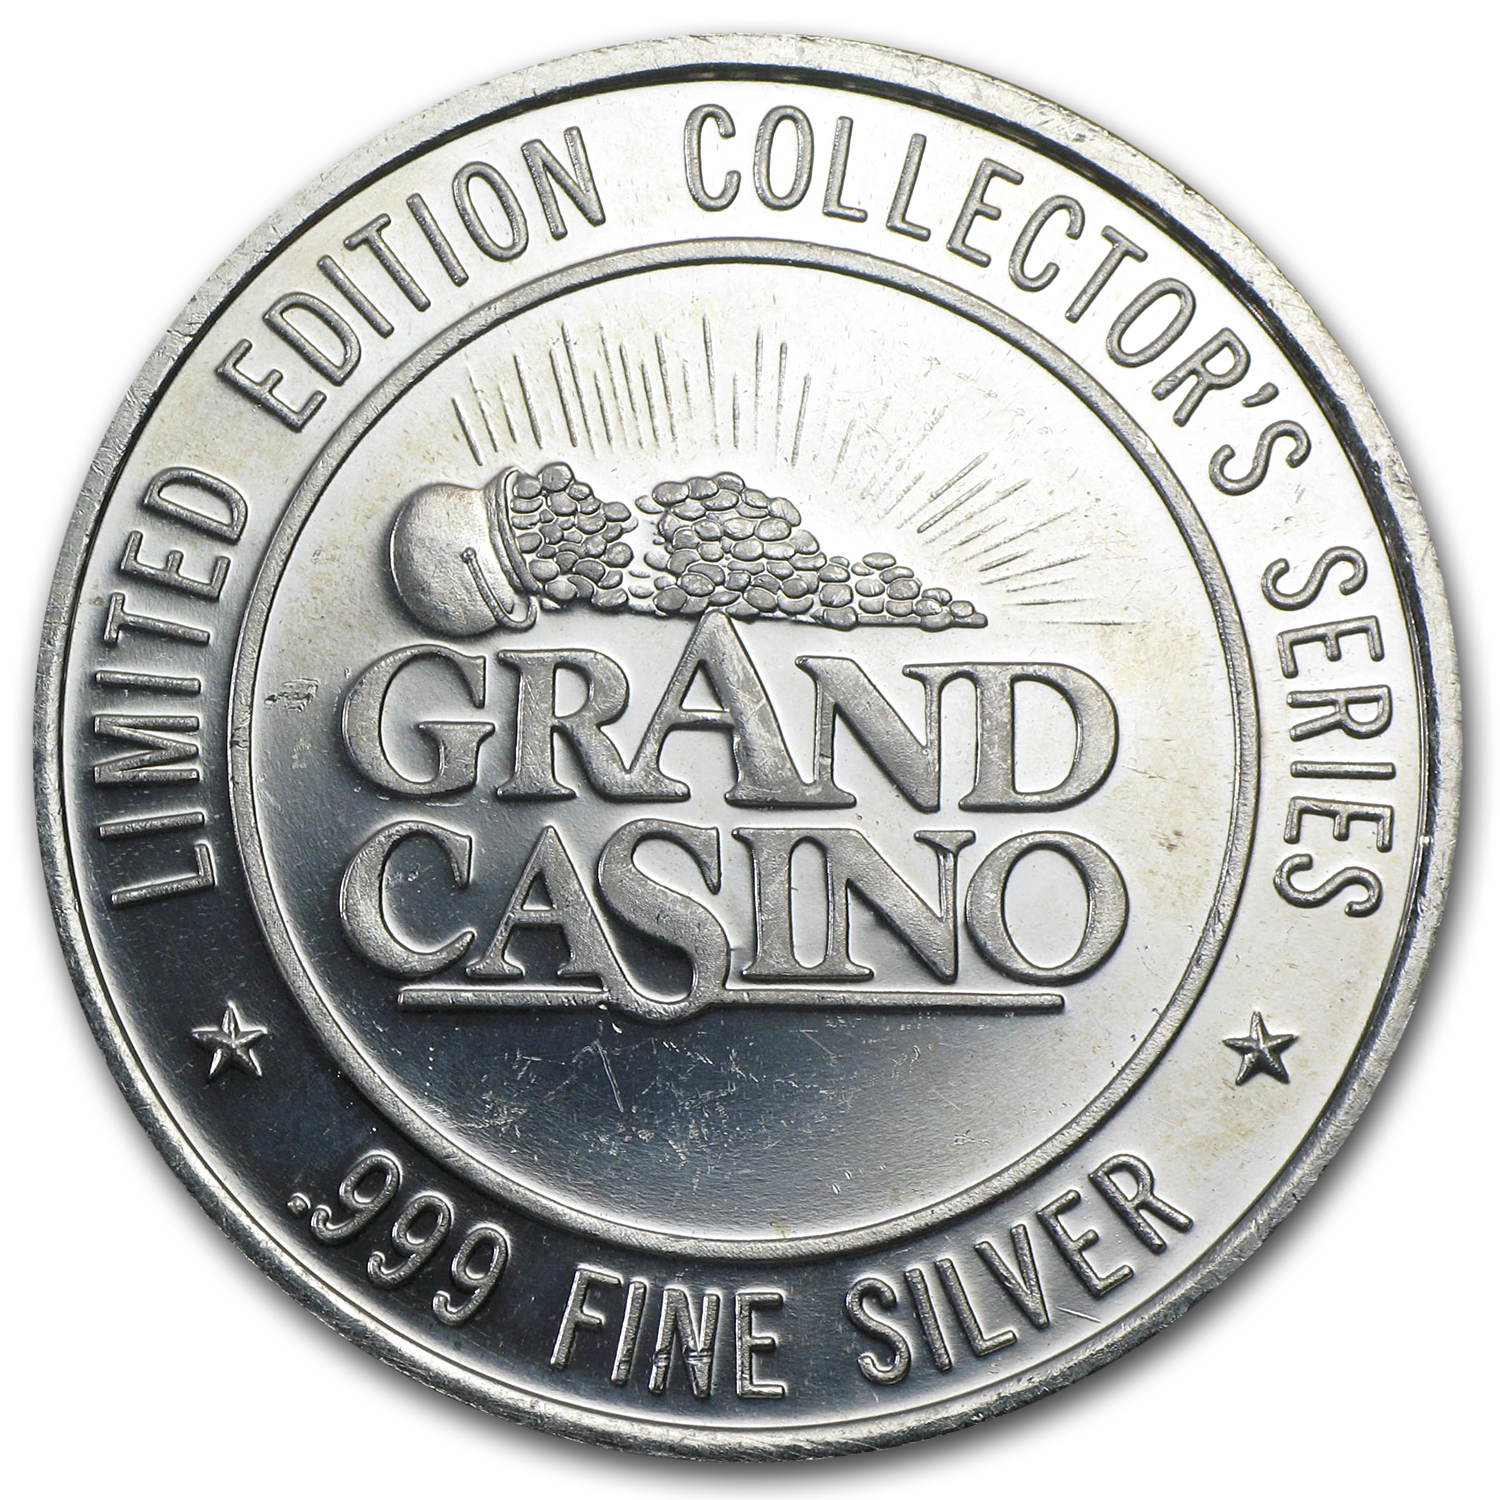 1.5 oz Silver Rounds - Grand Casino Gaming Token